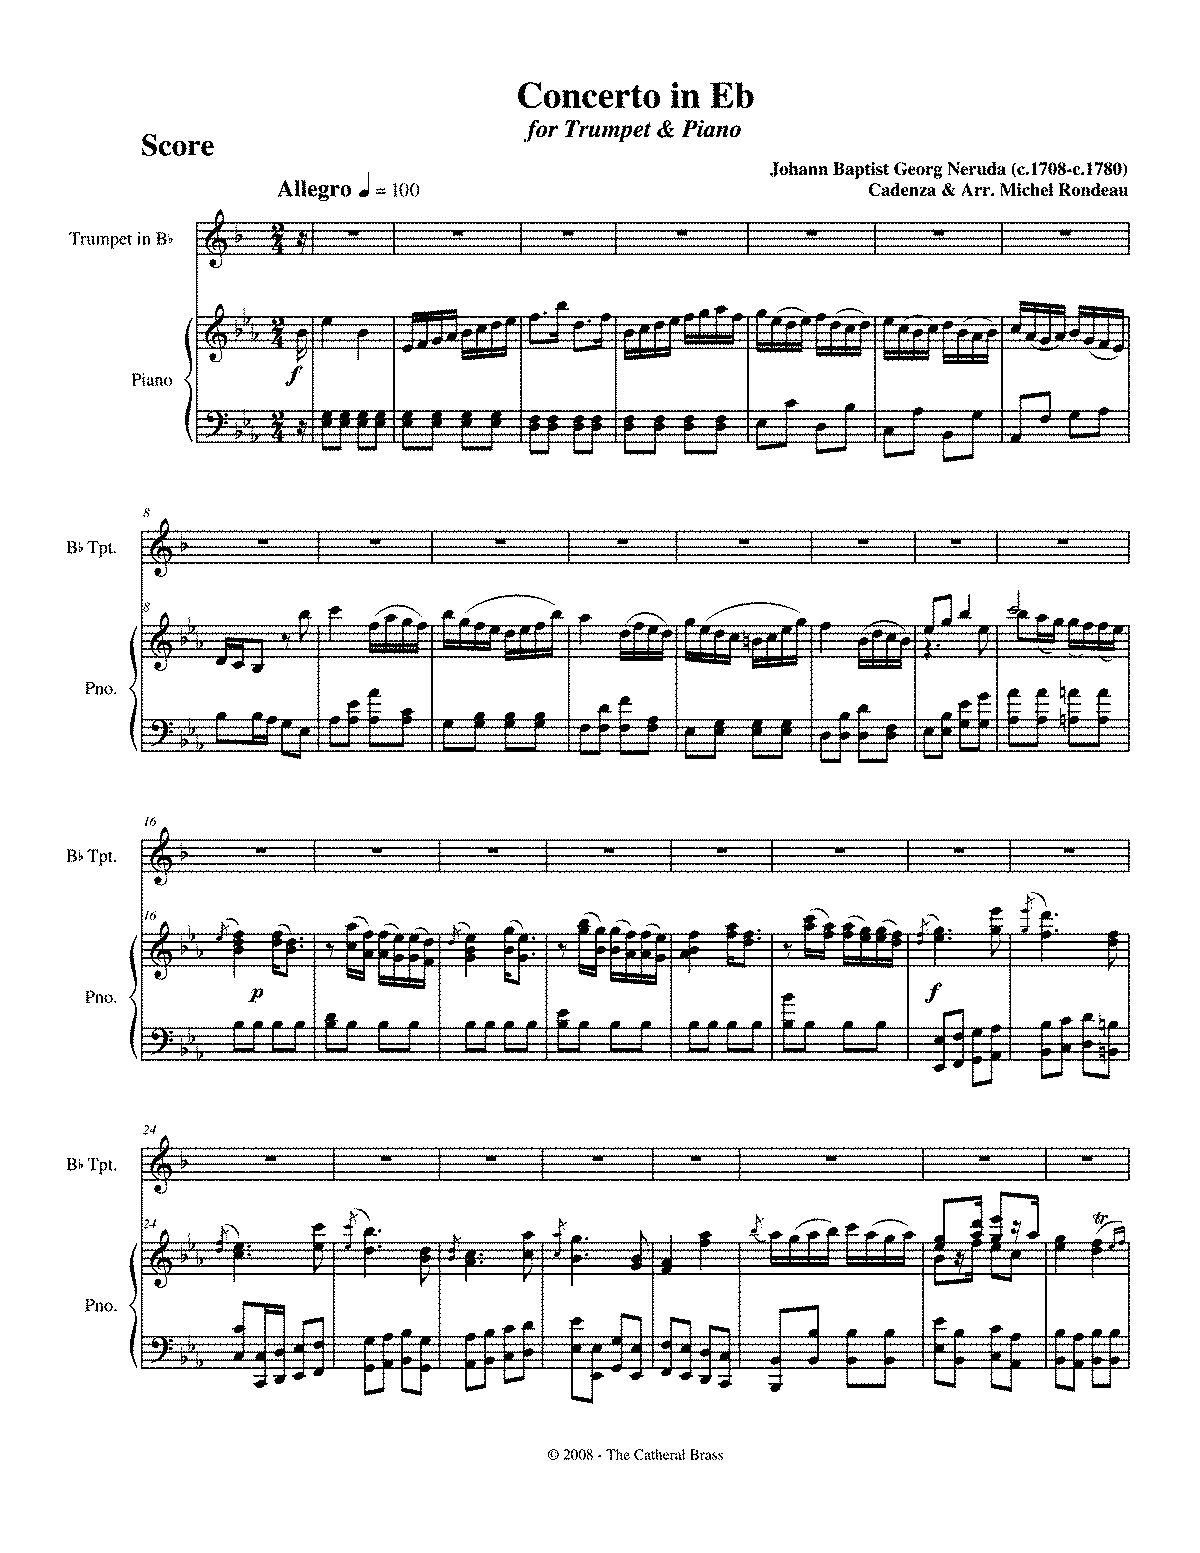 Johann Baptist Georg Neruda and his Concerto in DM for